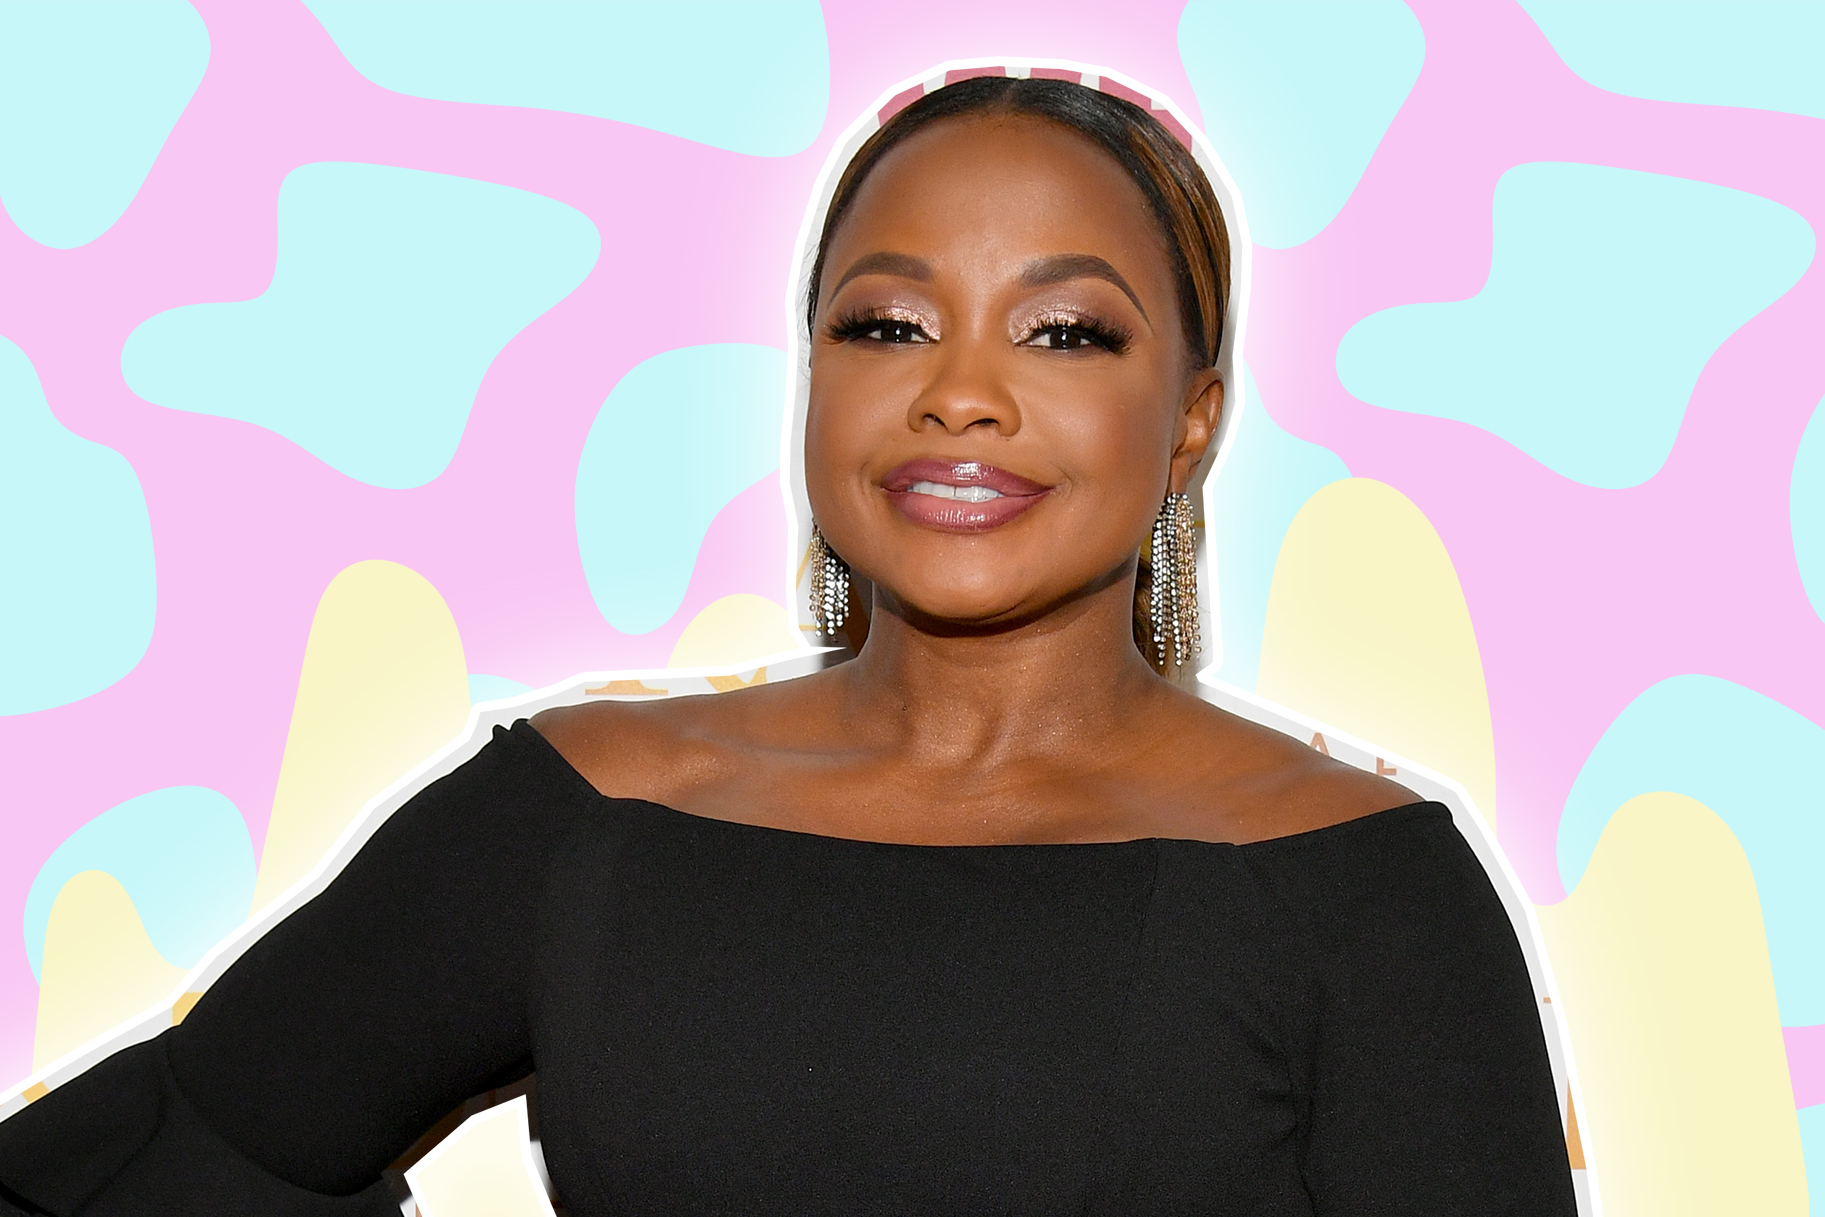 phaedra-parks-shows-fans-where-she-had-a-blast-recently-check-out-her-post